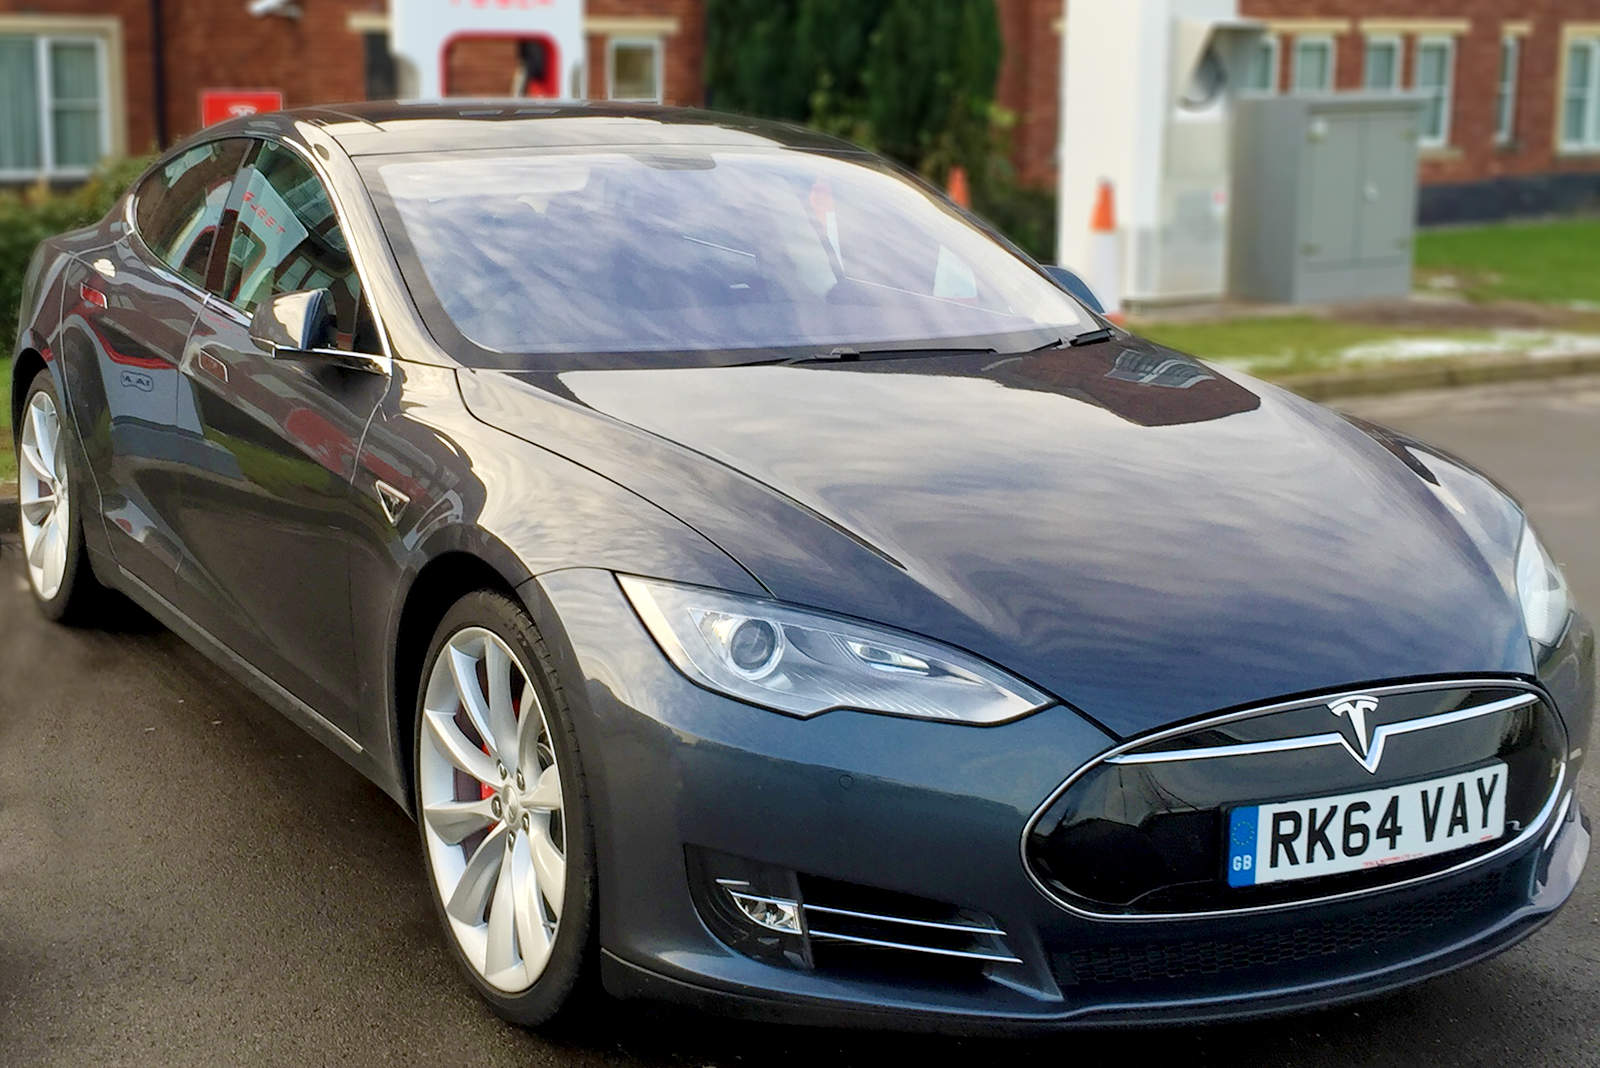 4 Lessons Apple Car Should Learn From Tesla